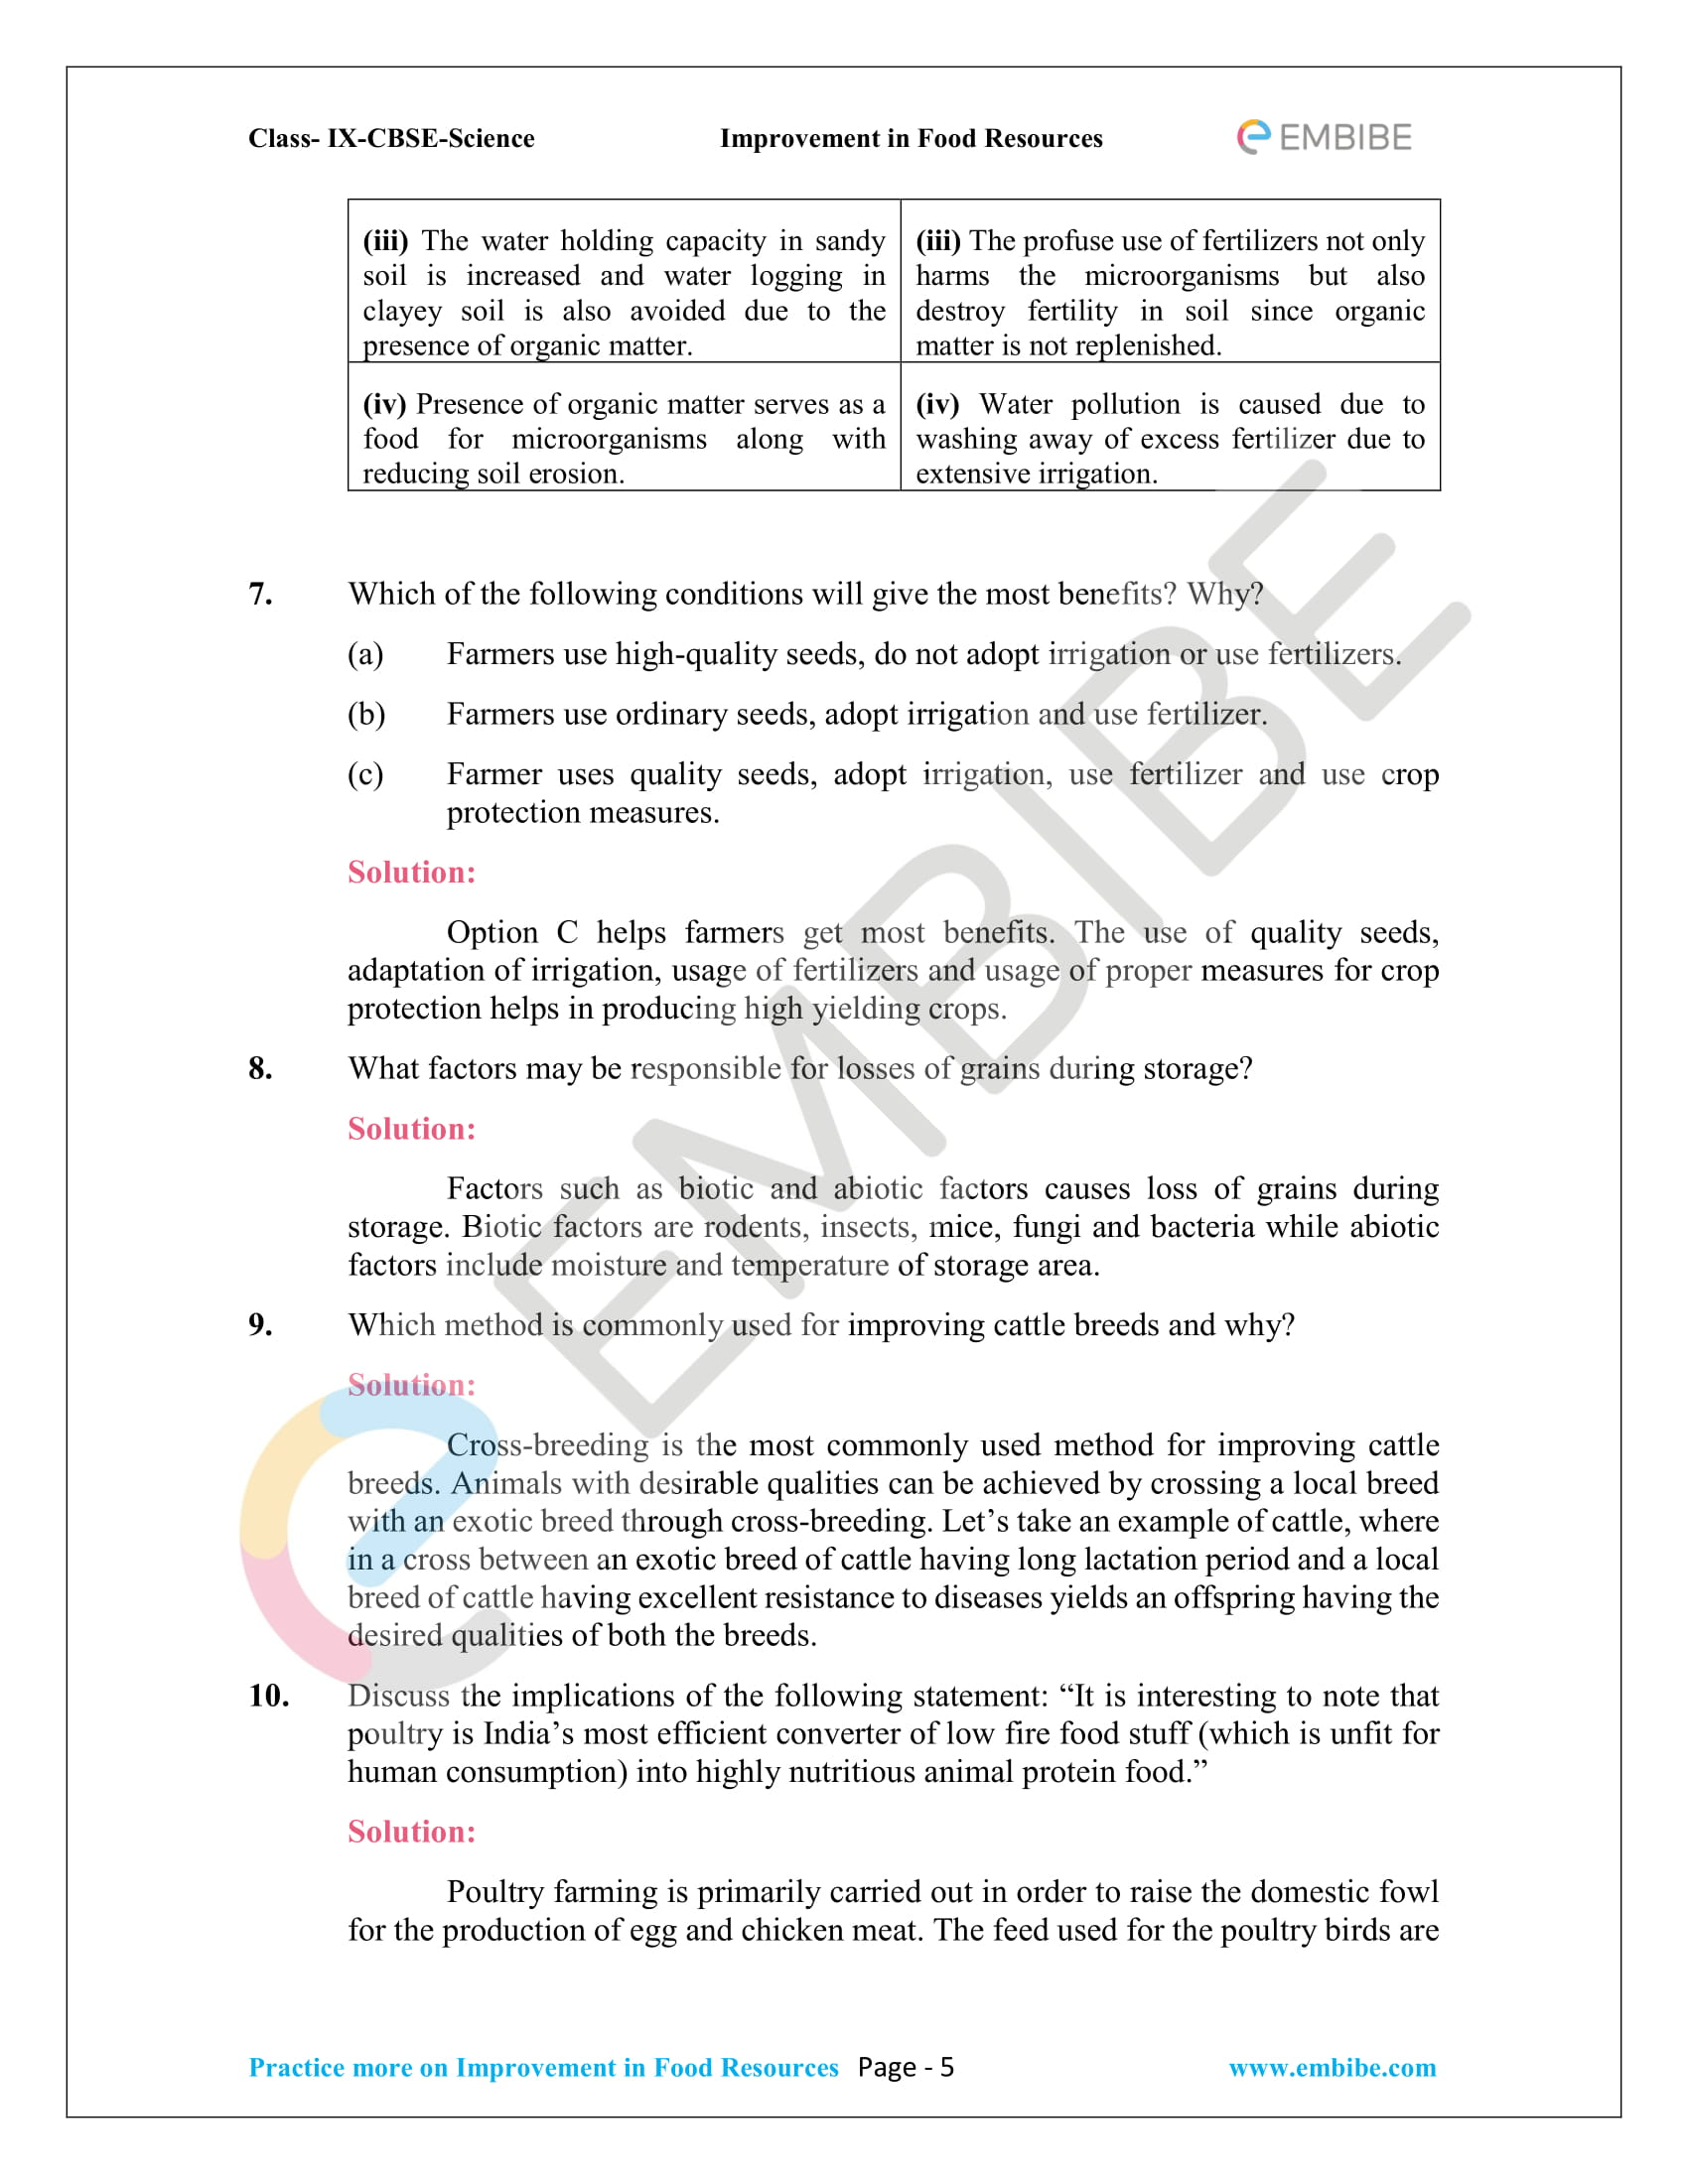 CBSE NCERT Solutions for Class 9 Science Chapter 15-5